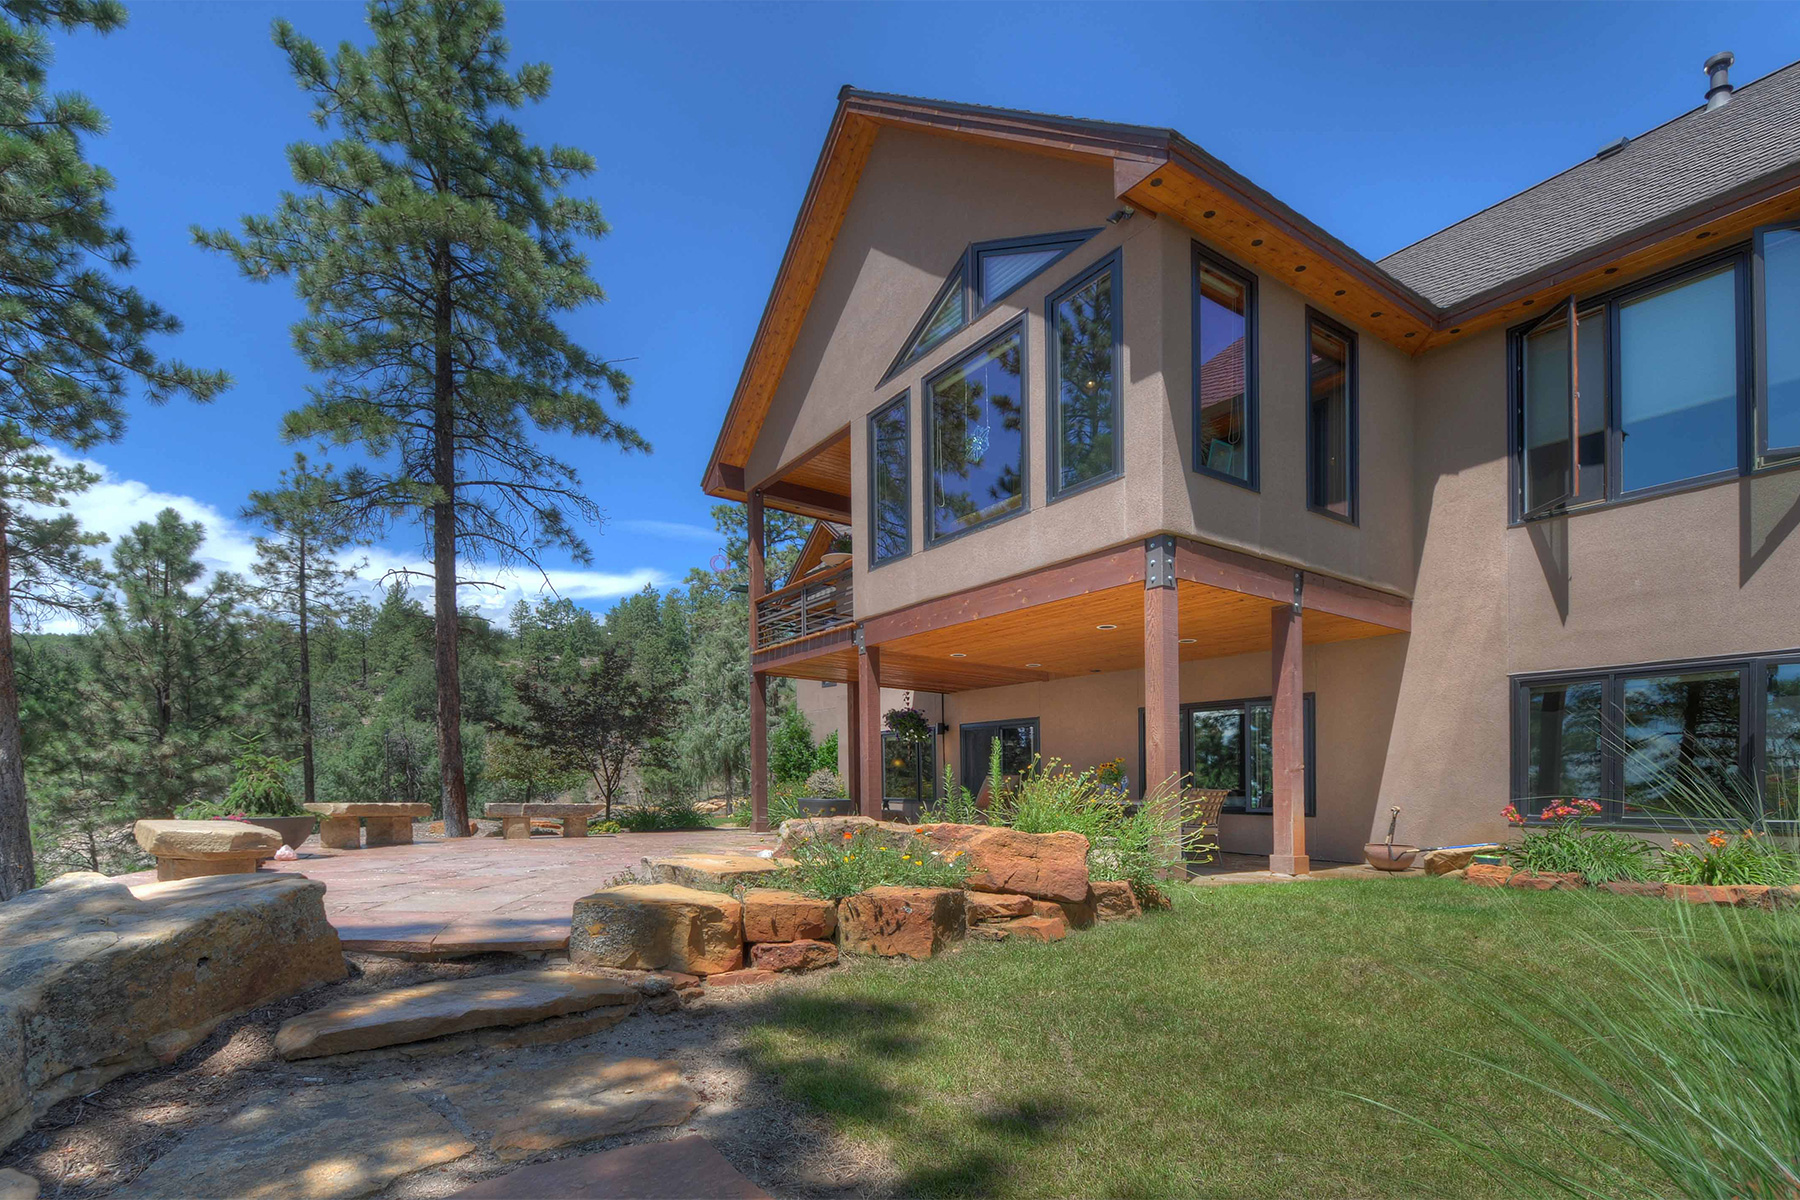 Additional photo for property listing at 1351 Durango Cliffs Drive 1351 Durango Cliffs Drive Durango, Colorado 81301 United States